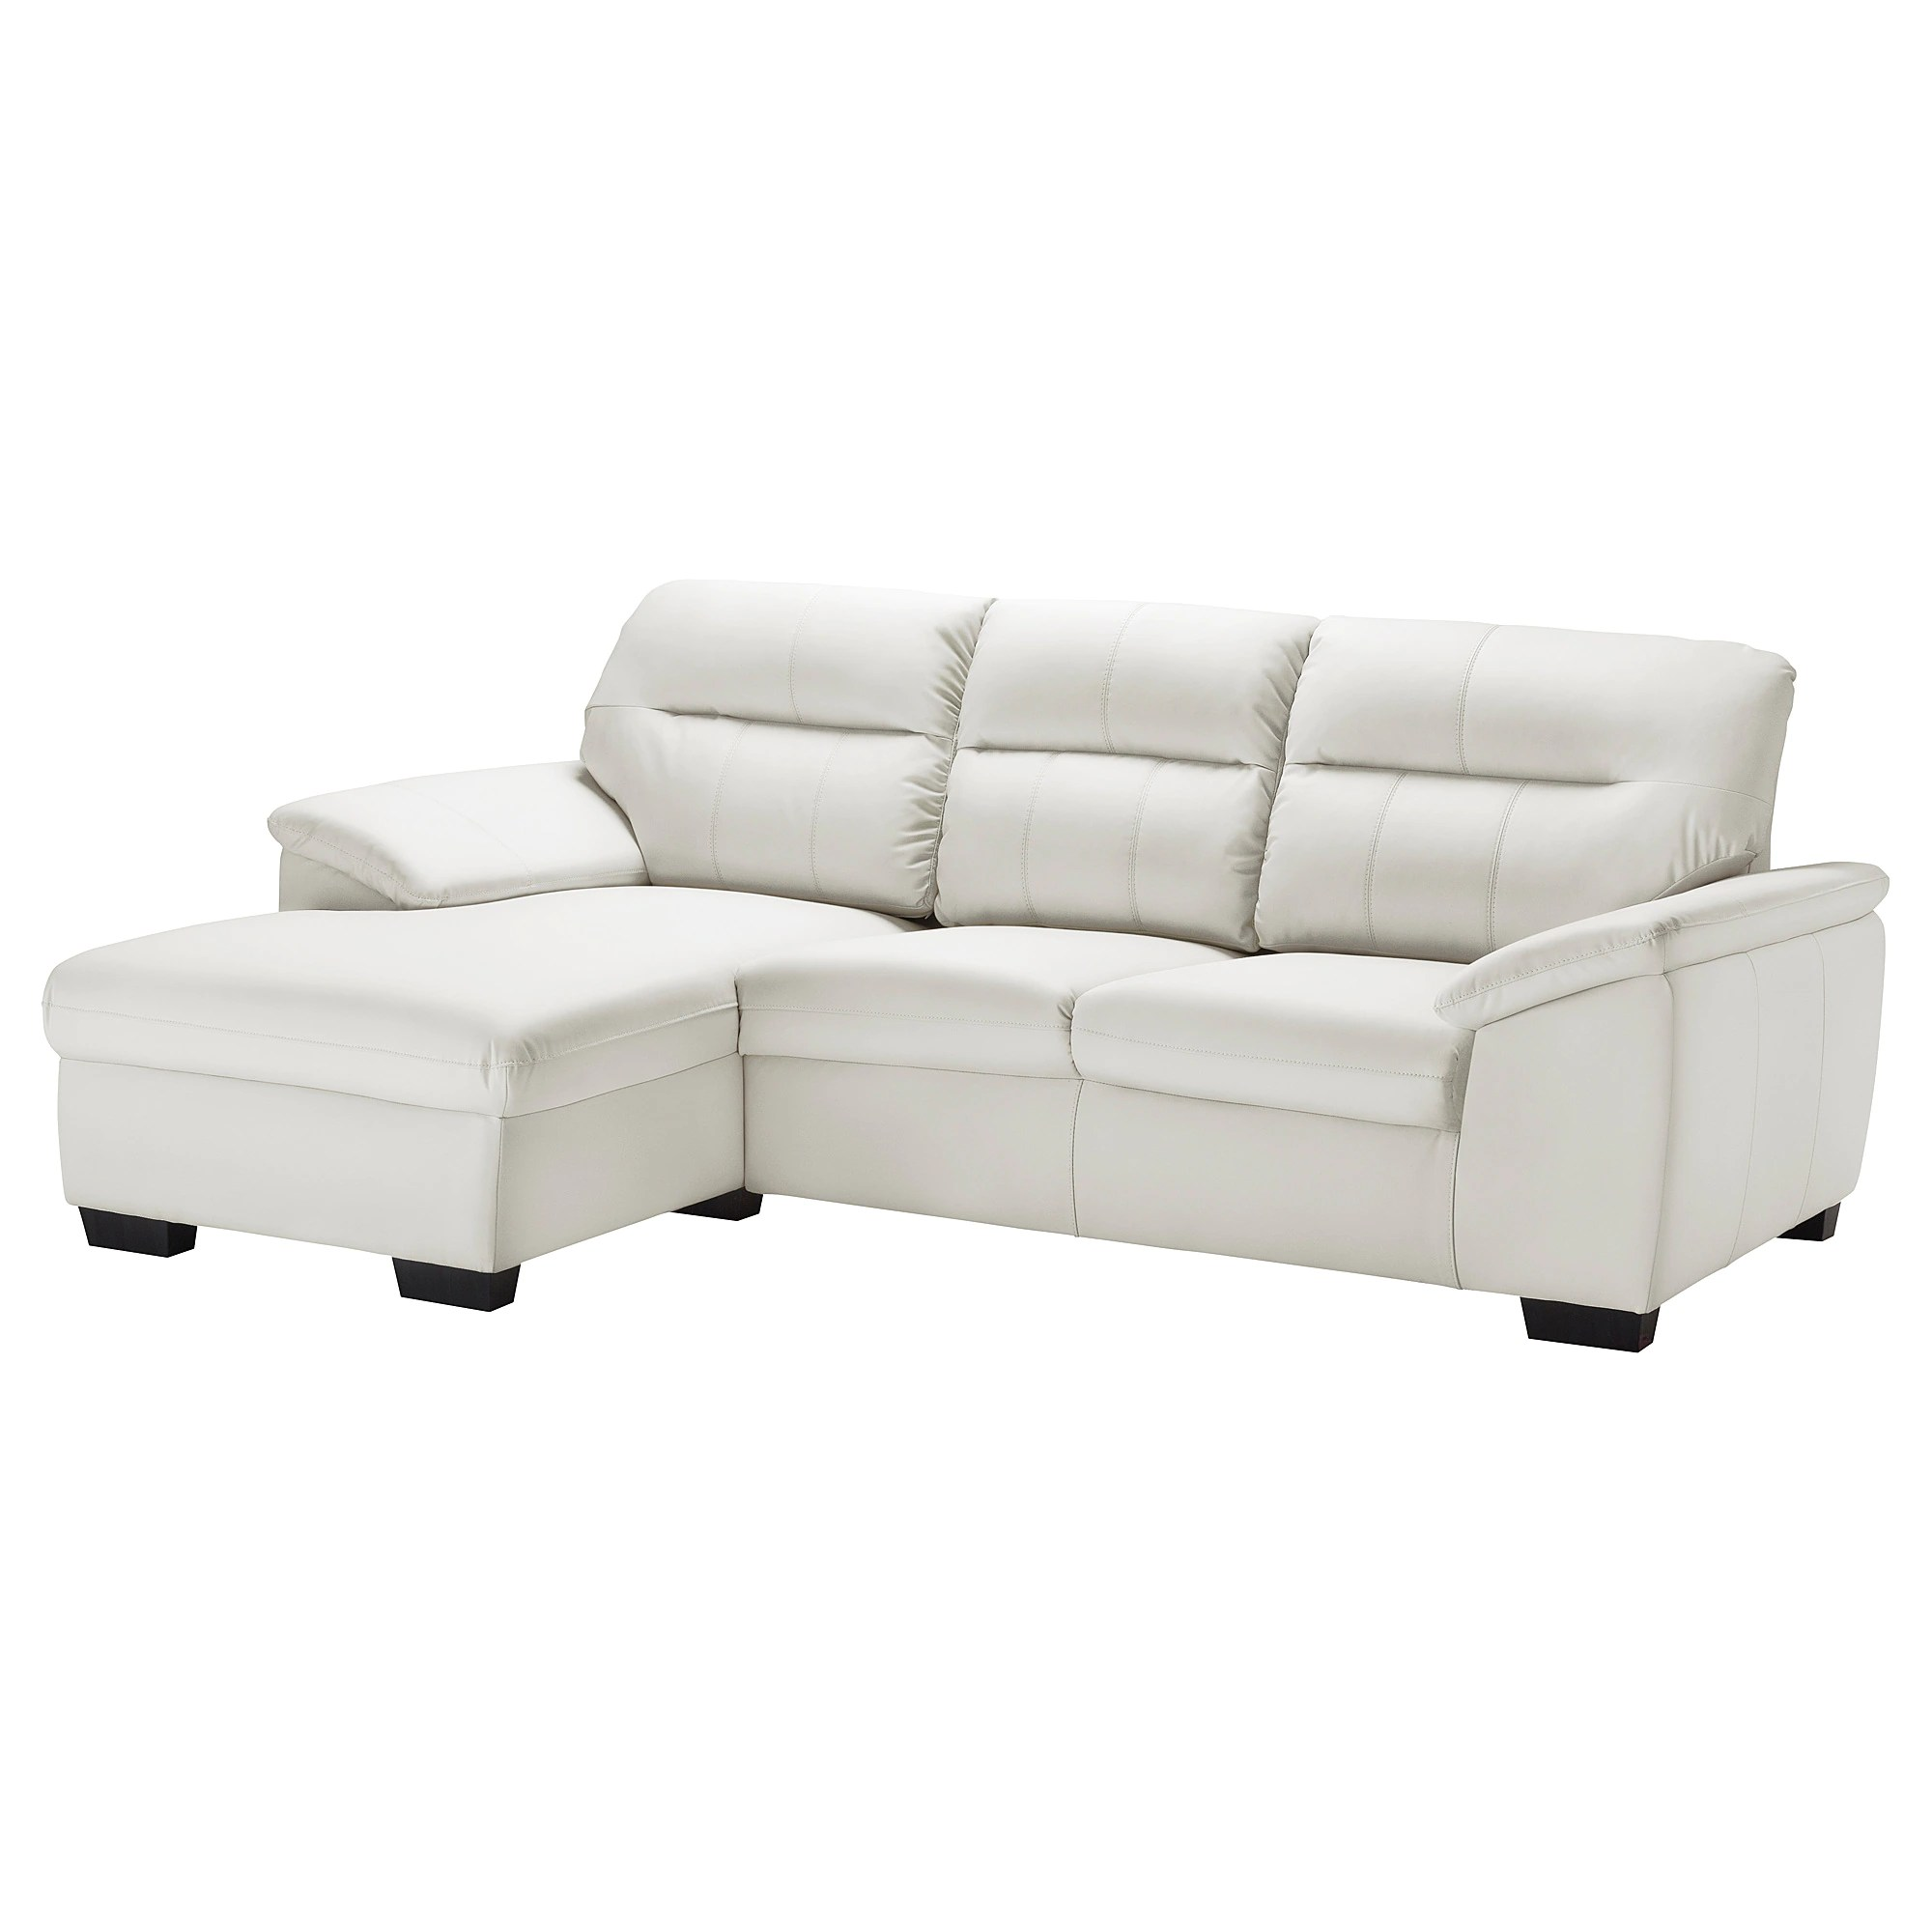 Two Seat Sofa With Chaise Longue Malviken Kimstad Off White